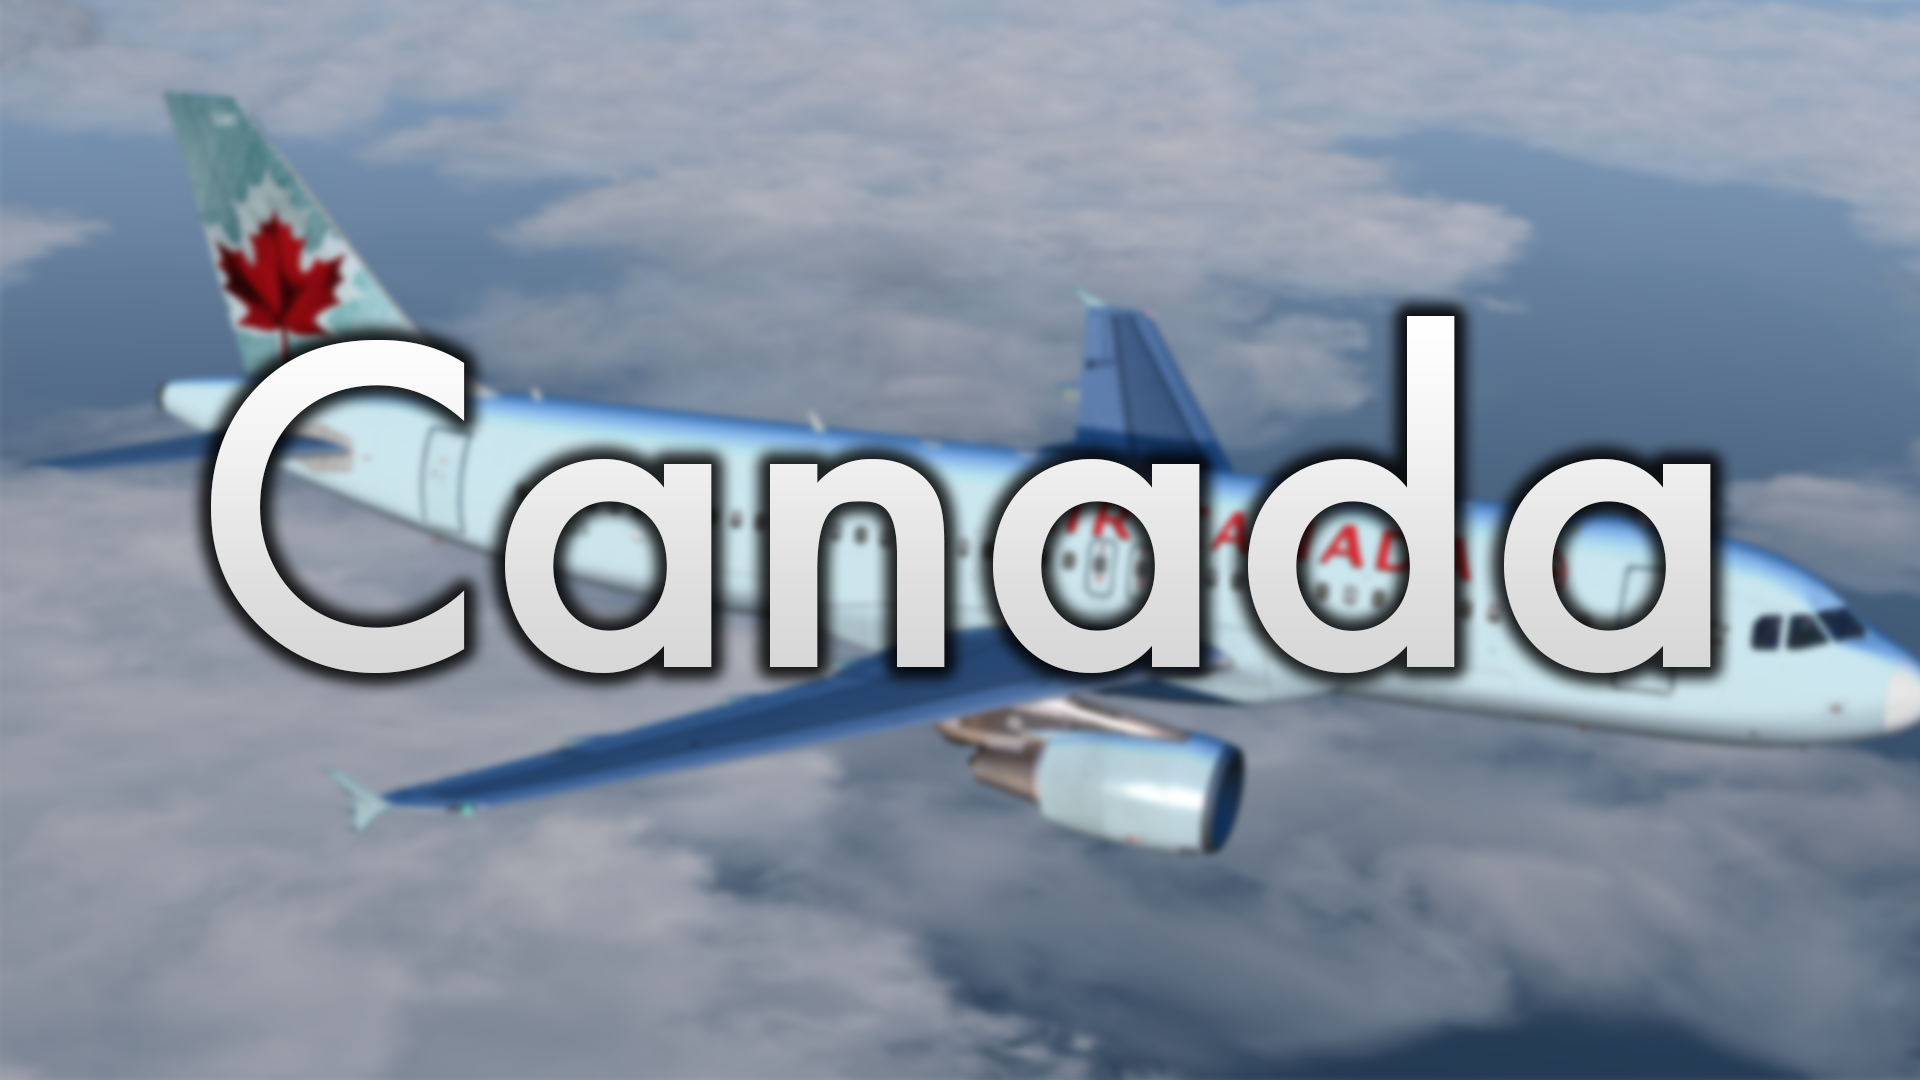 CanadaThumb.png